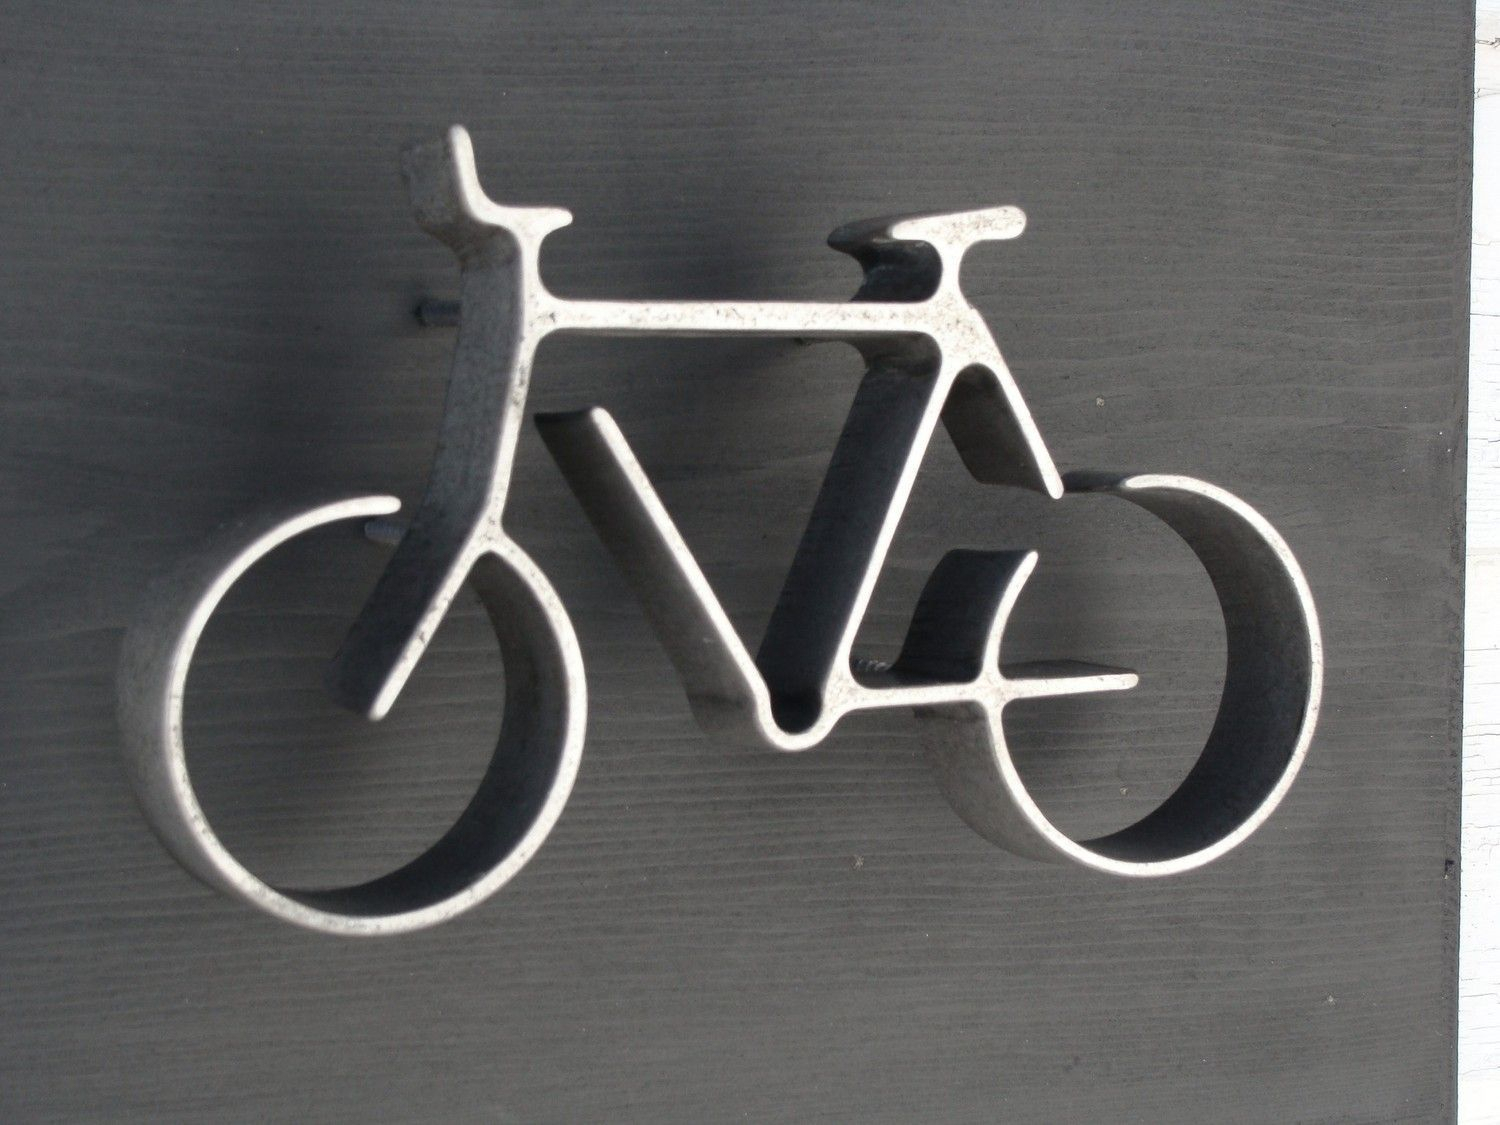 Metal Bicycle Wall Decor Inside Most Recent Metal Bicycle Wall Decor, Bike Wall Art, Home Decor Bicycle, Wall (View 12 of 20)